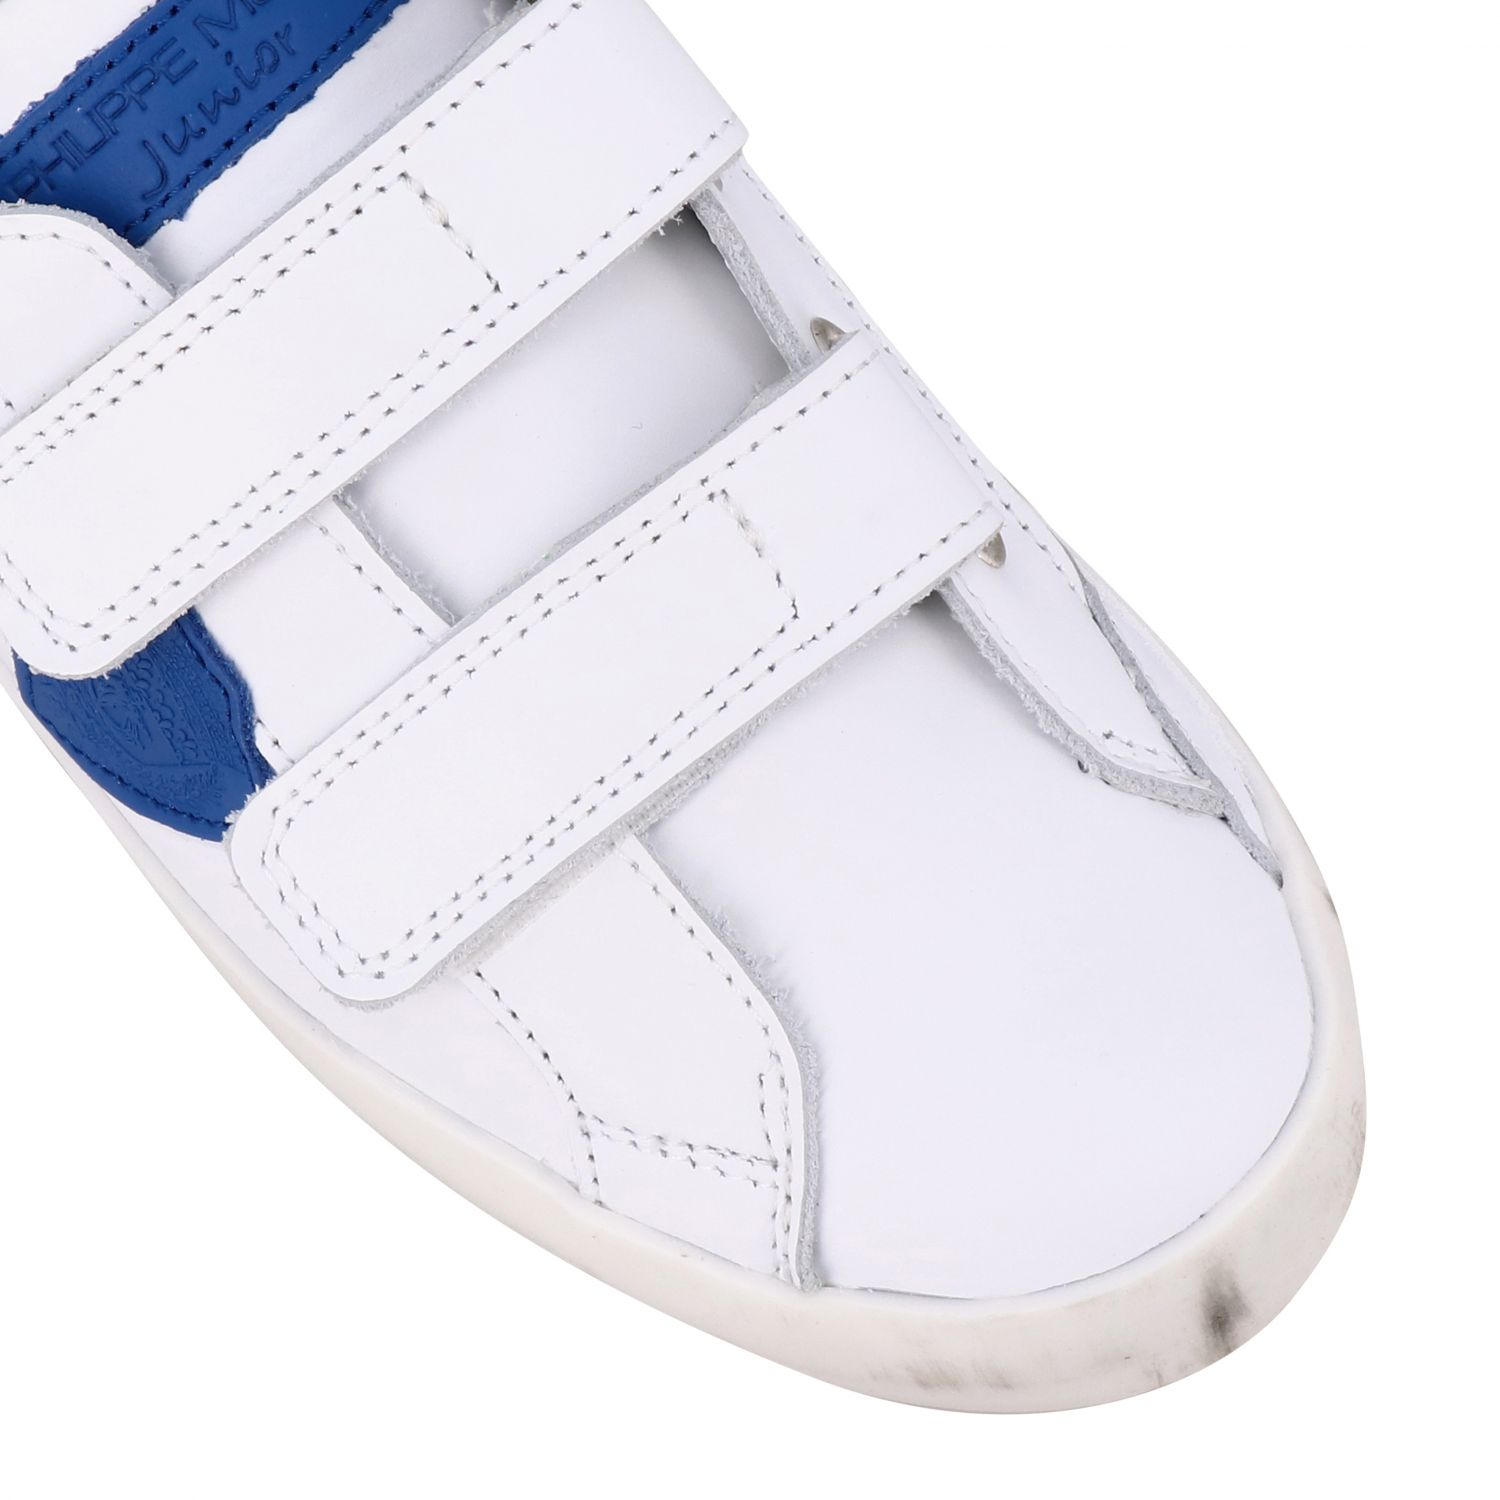 Shoes kids Philippe Model white 4